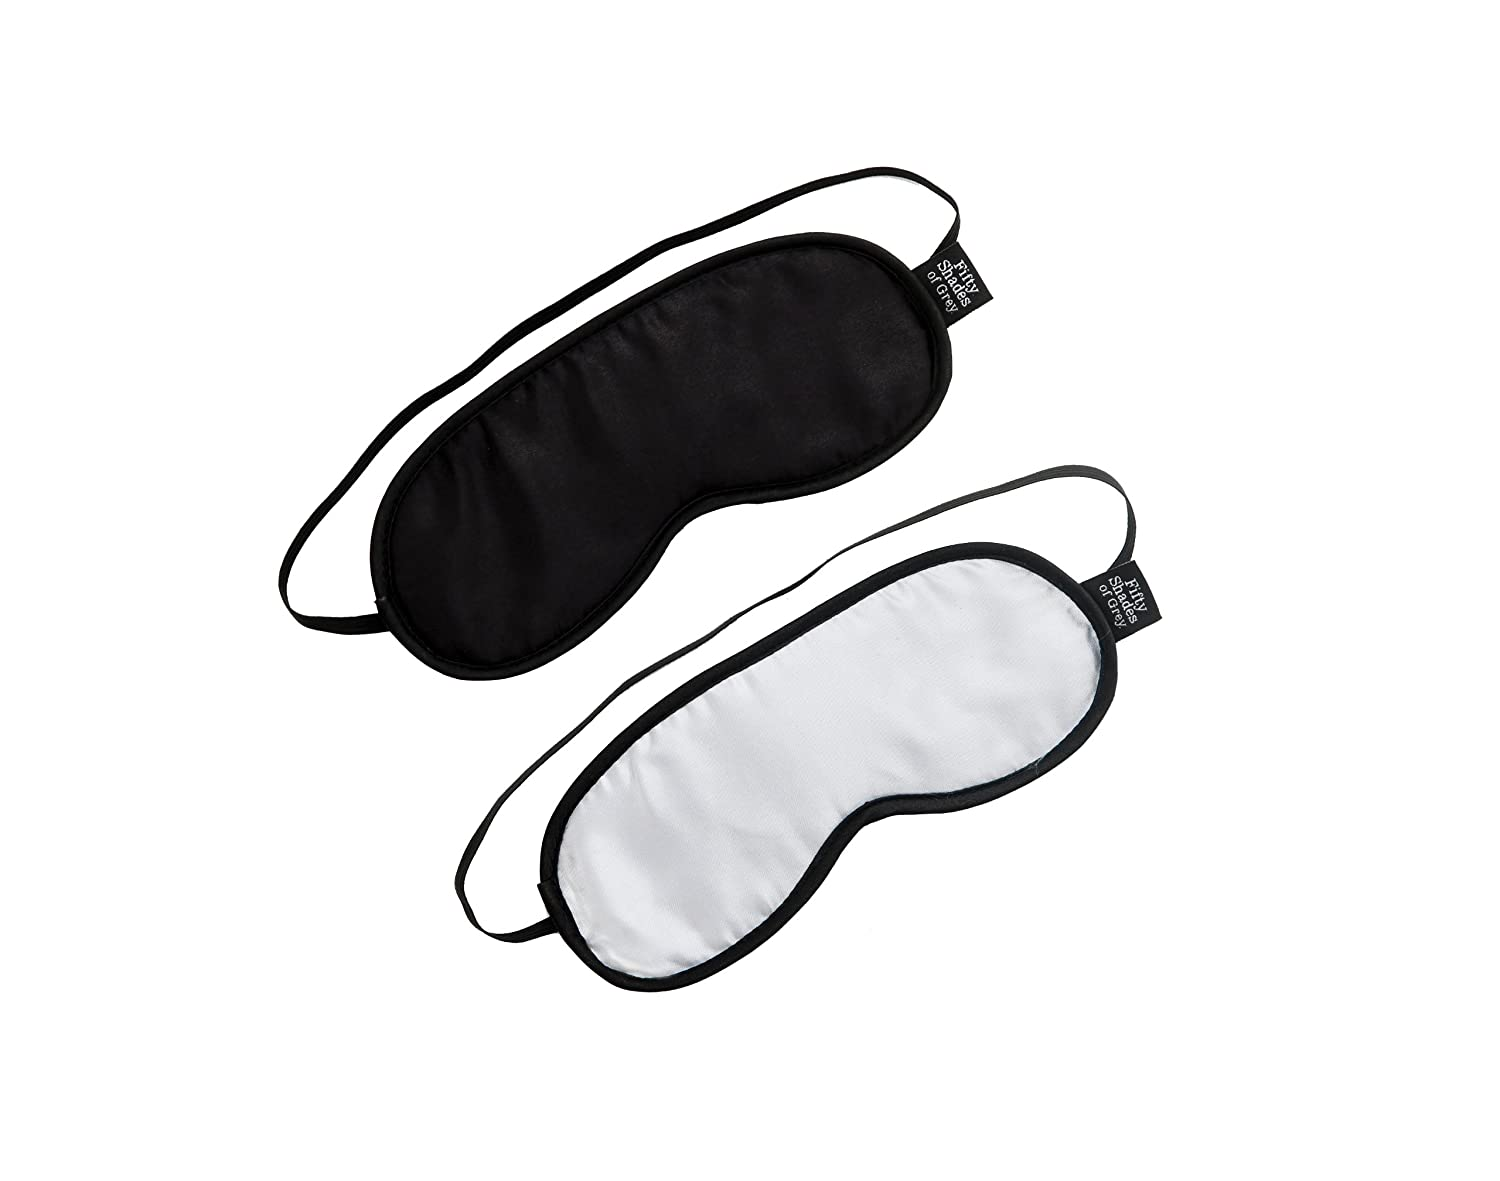 Fifty Shades Of Grey No Peeking Blindfold Twin Pack интимные товары new furrniture s m sexbeltstrp